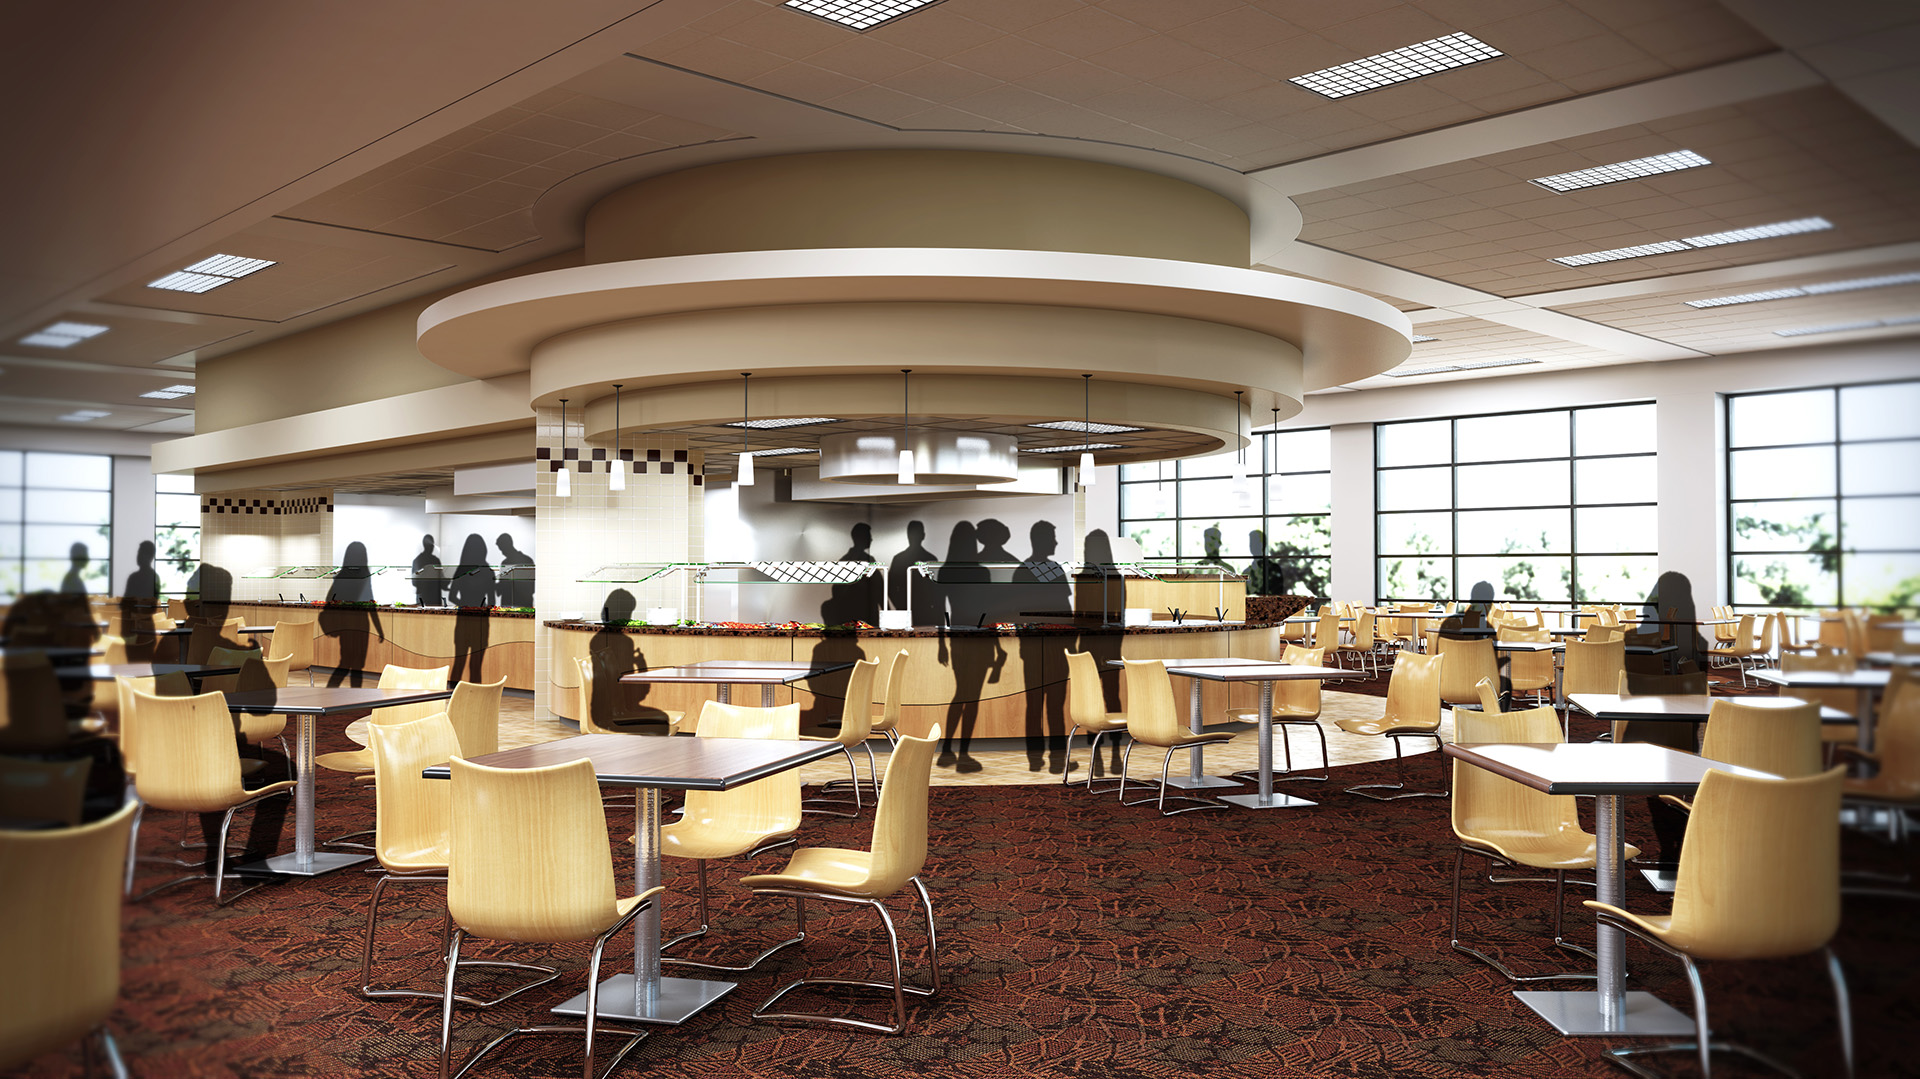 Gordon State College Dining Facility Renovations Sp